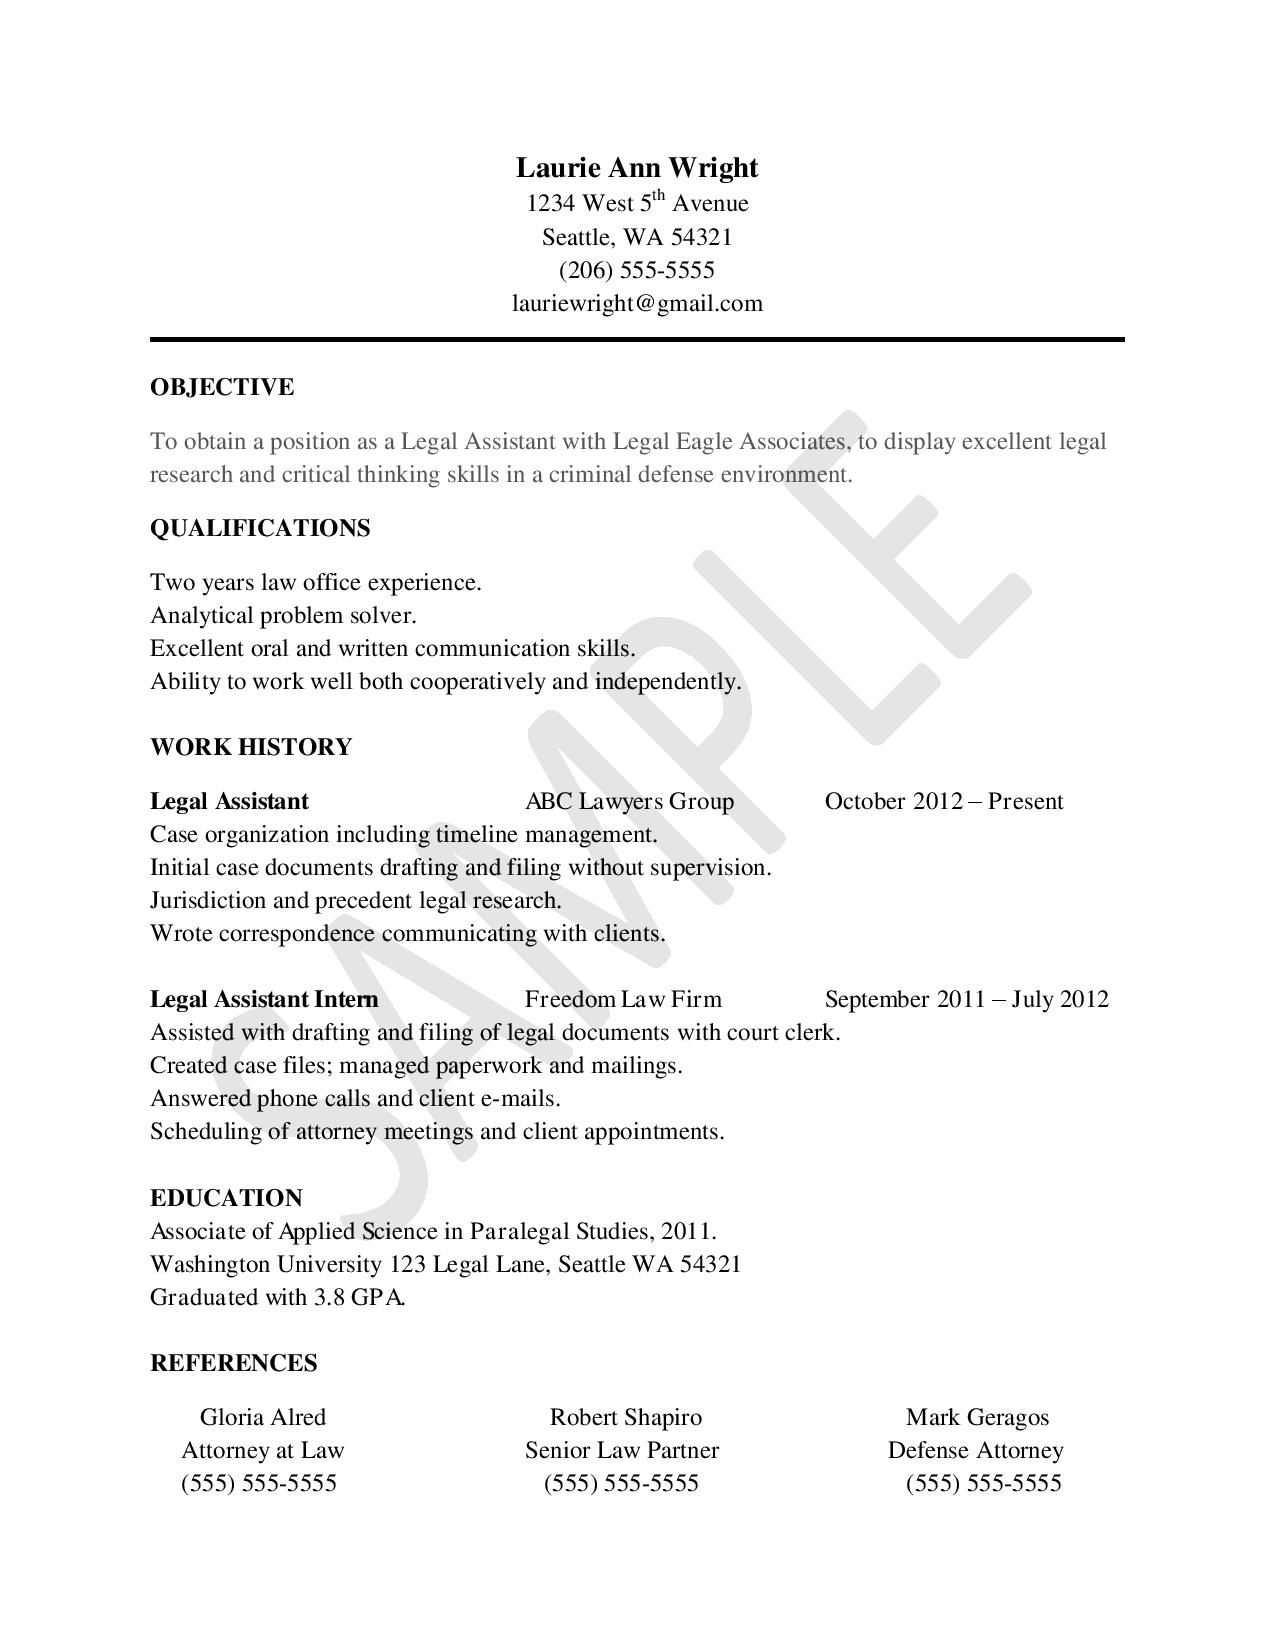 Skills For Law School Resume Sample Resume For Legal Assistants Legal Assistant Tips